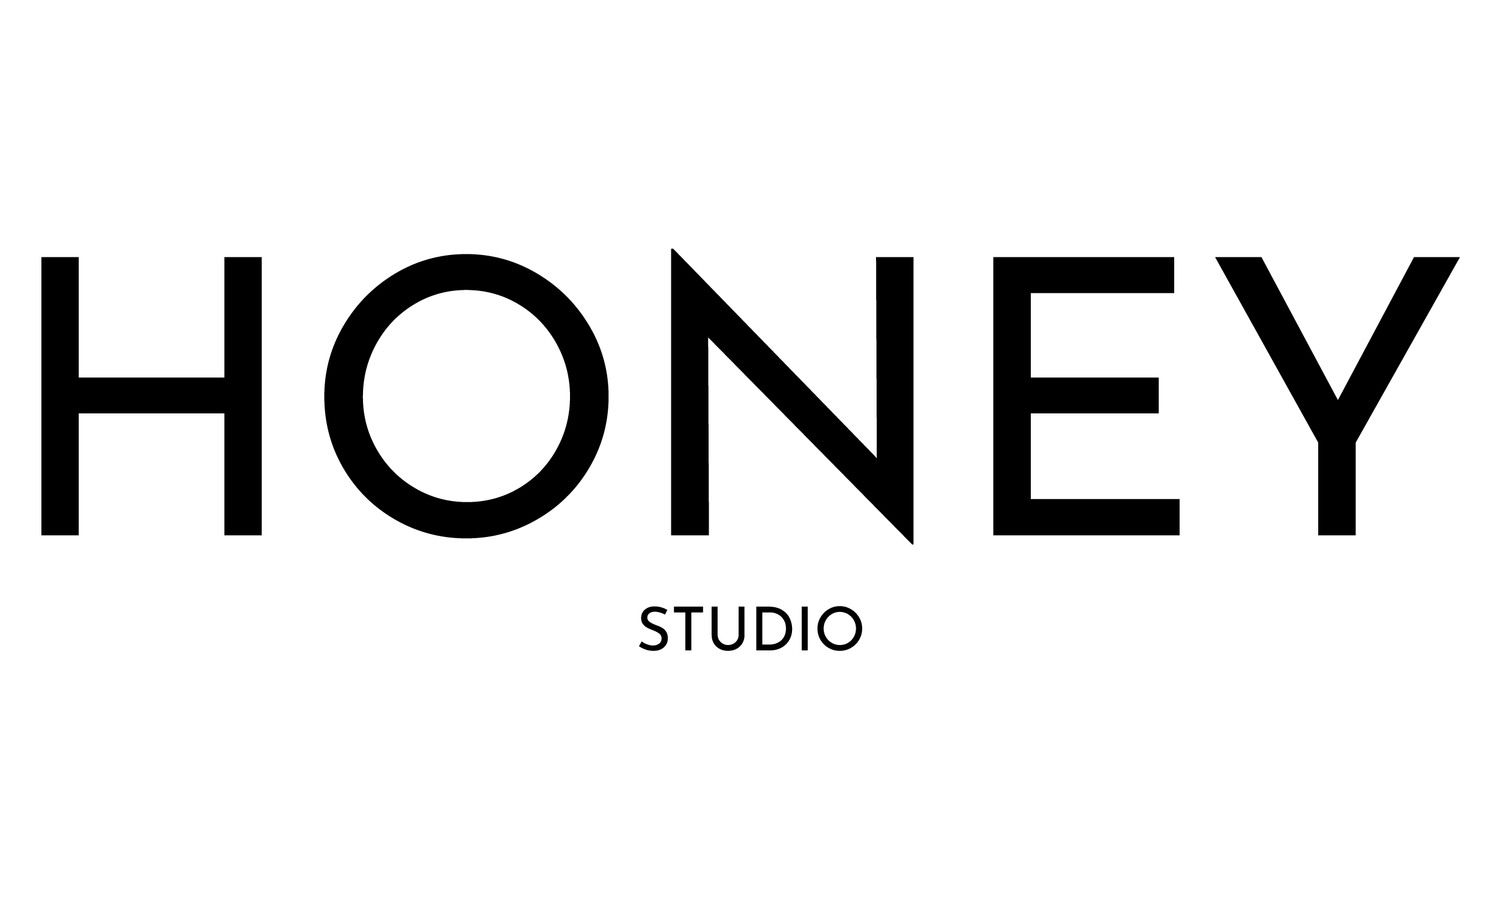 HONEY STUDIO